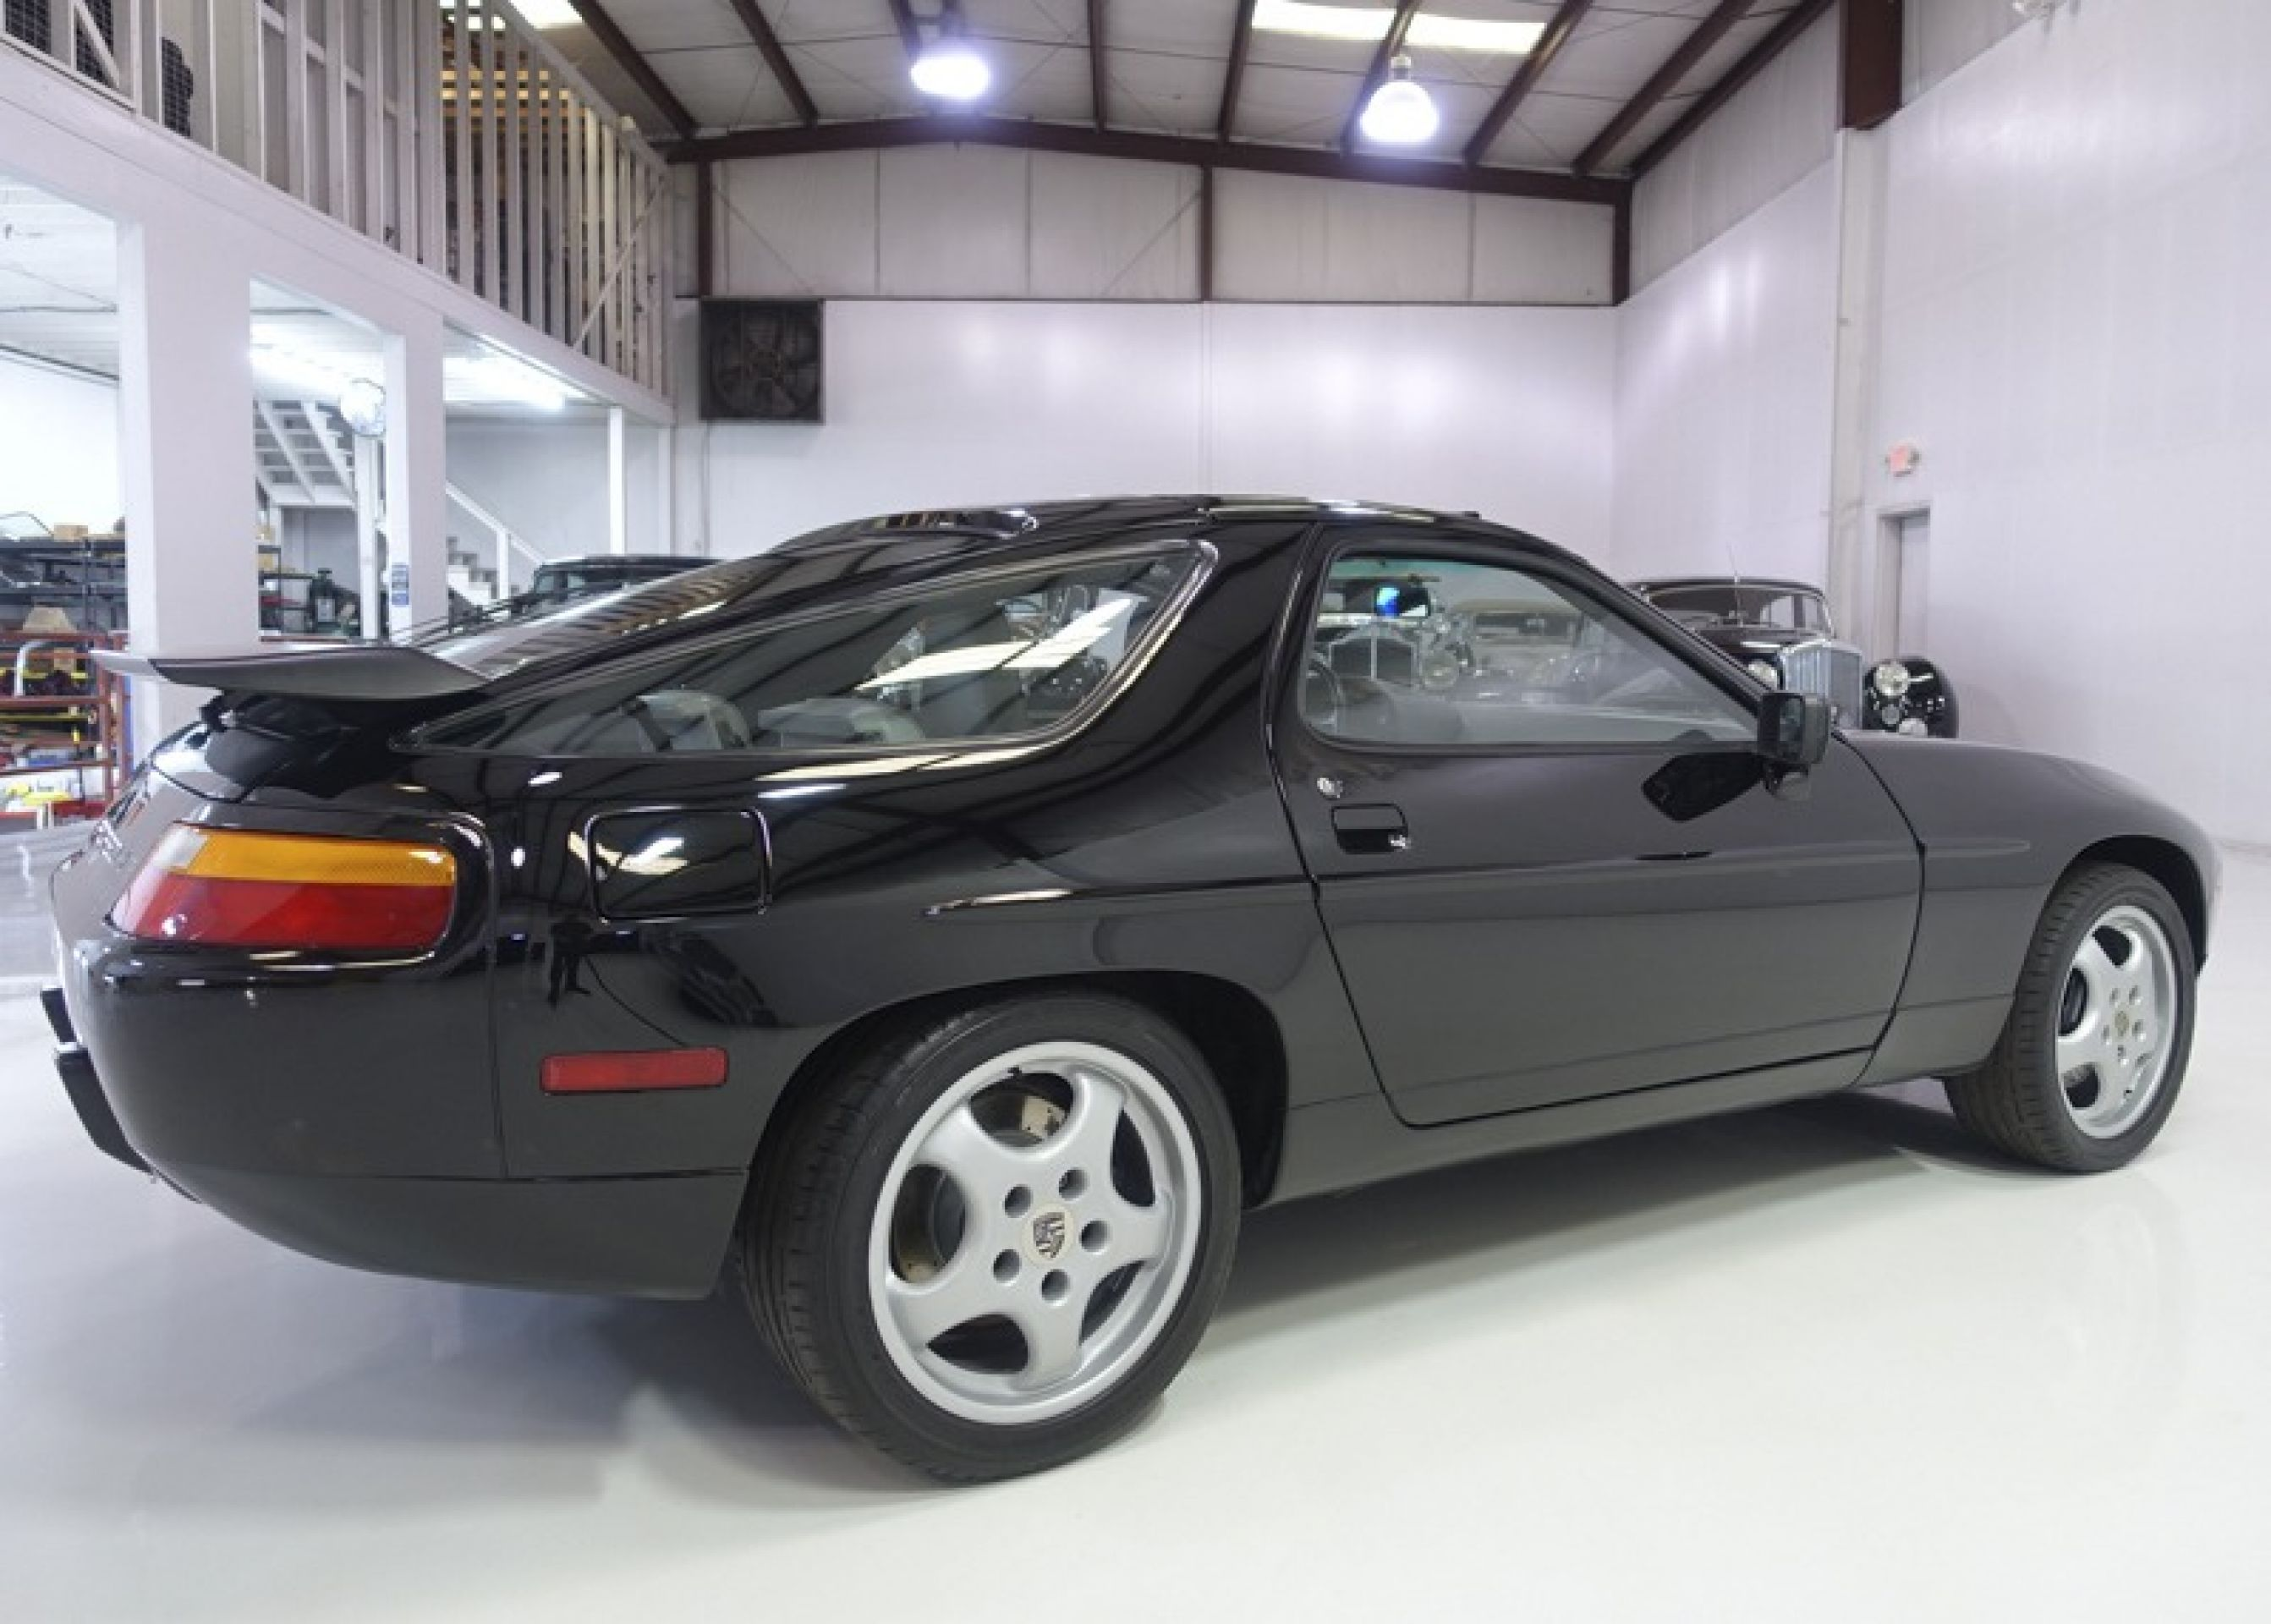 1988 Porsche 928 S4 Sunroof Coupe